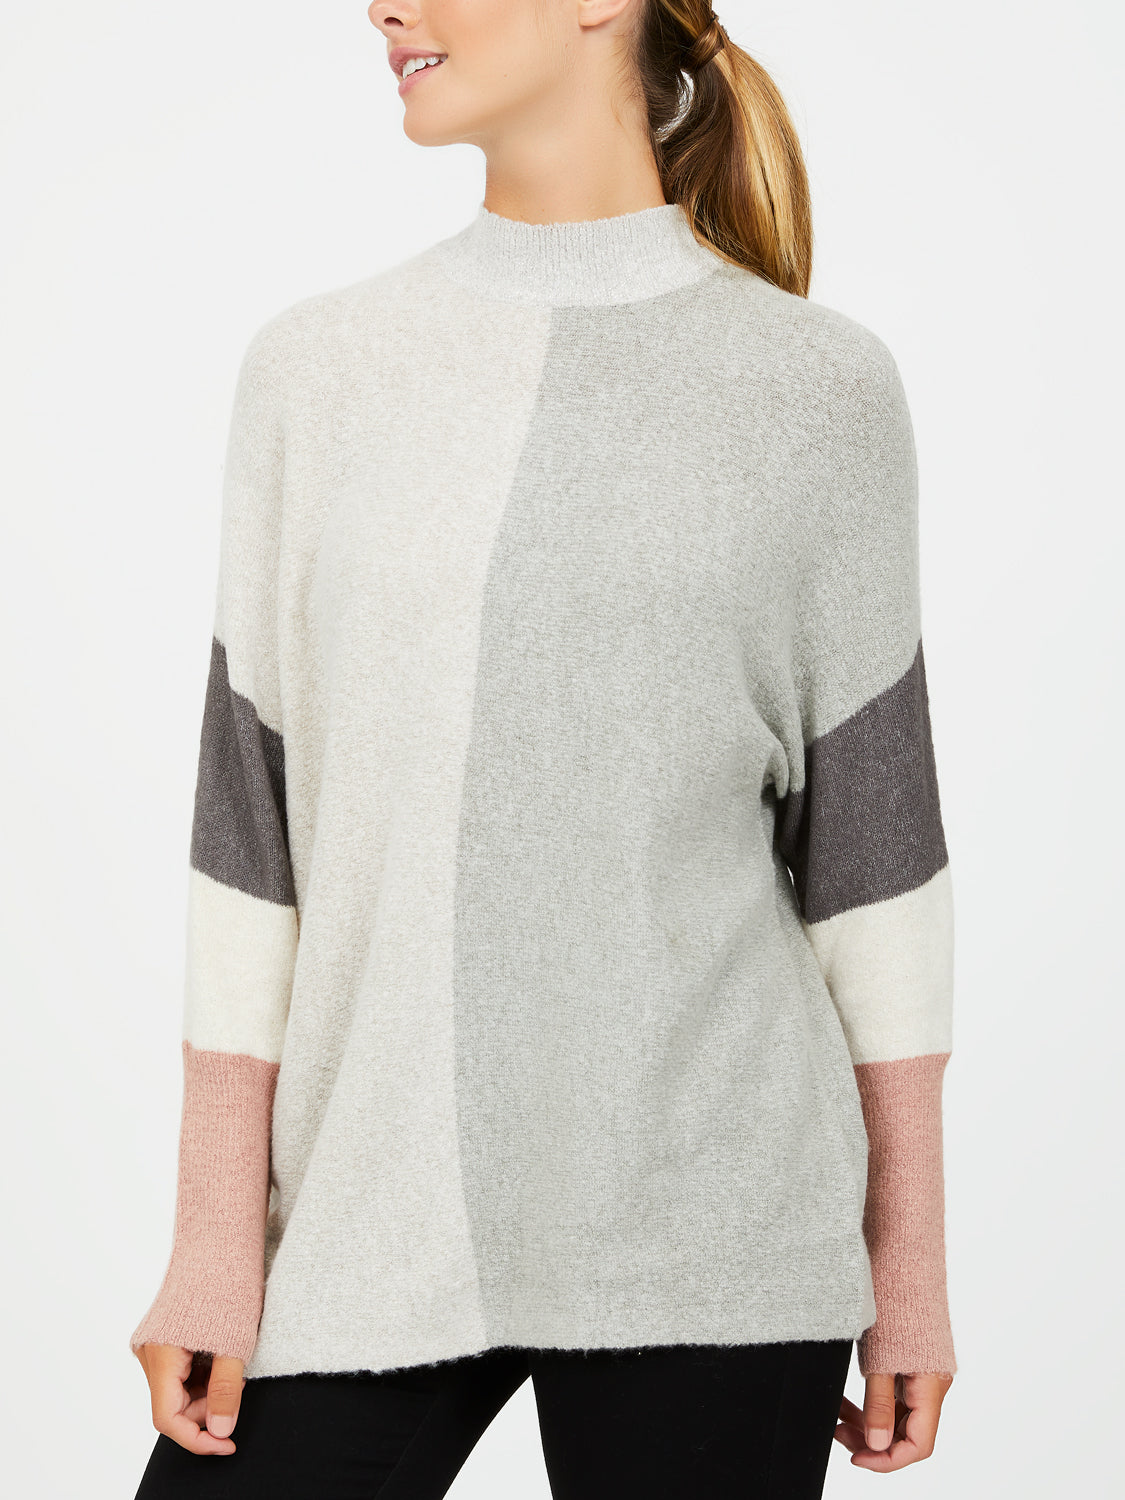 Colour Block Metallic Knit Sweater